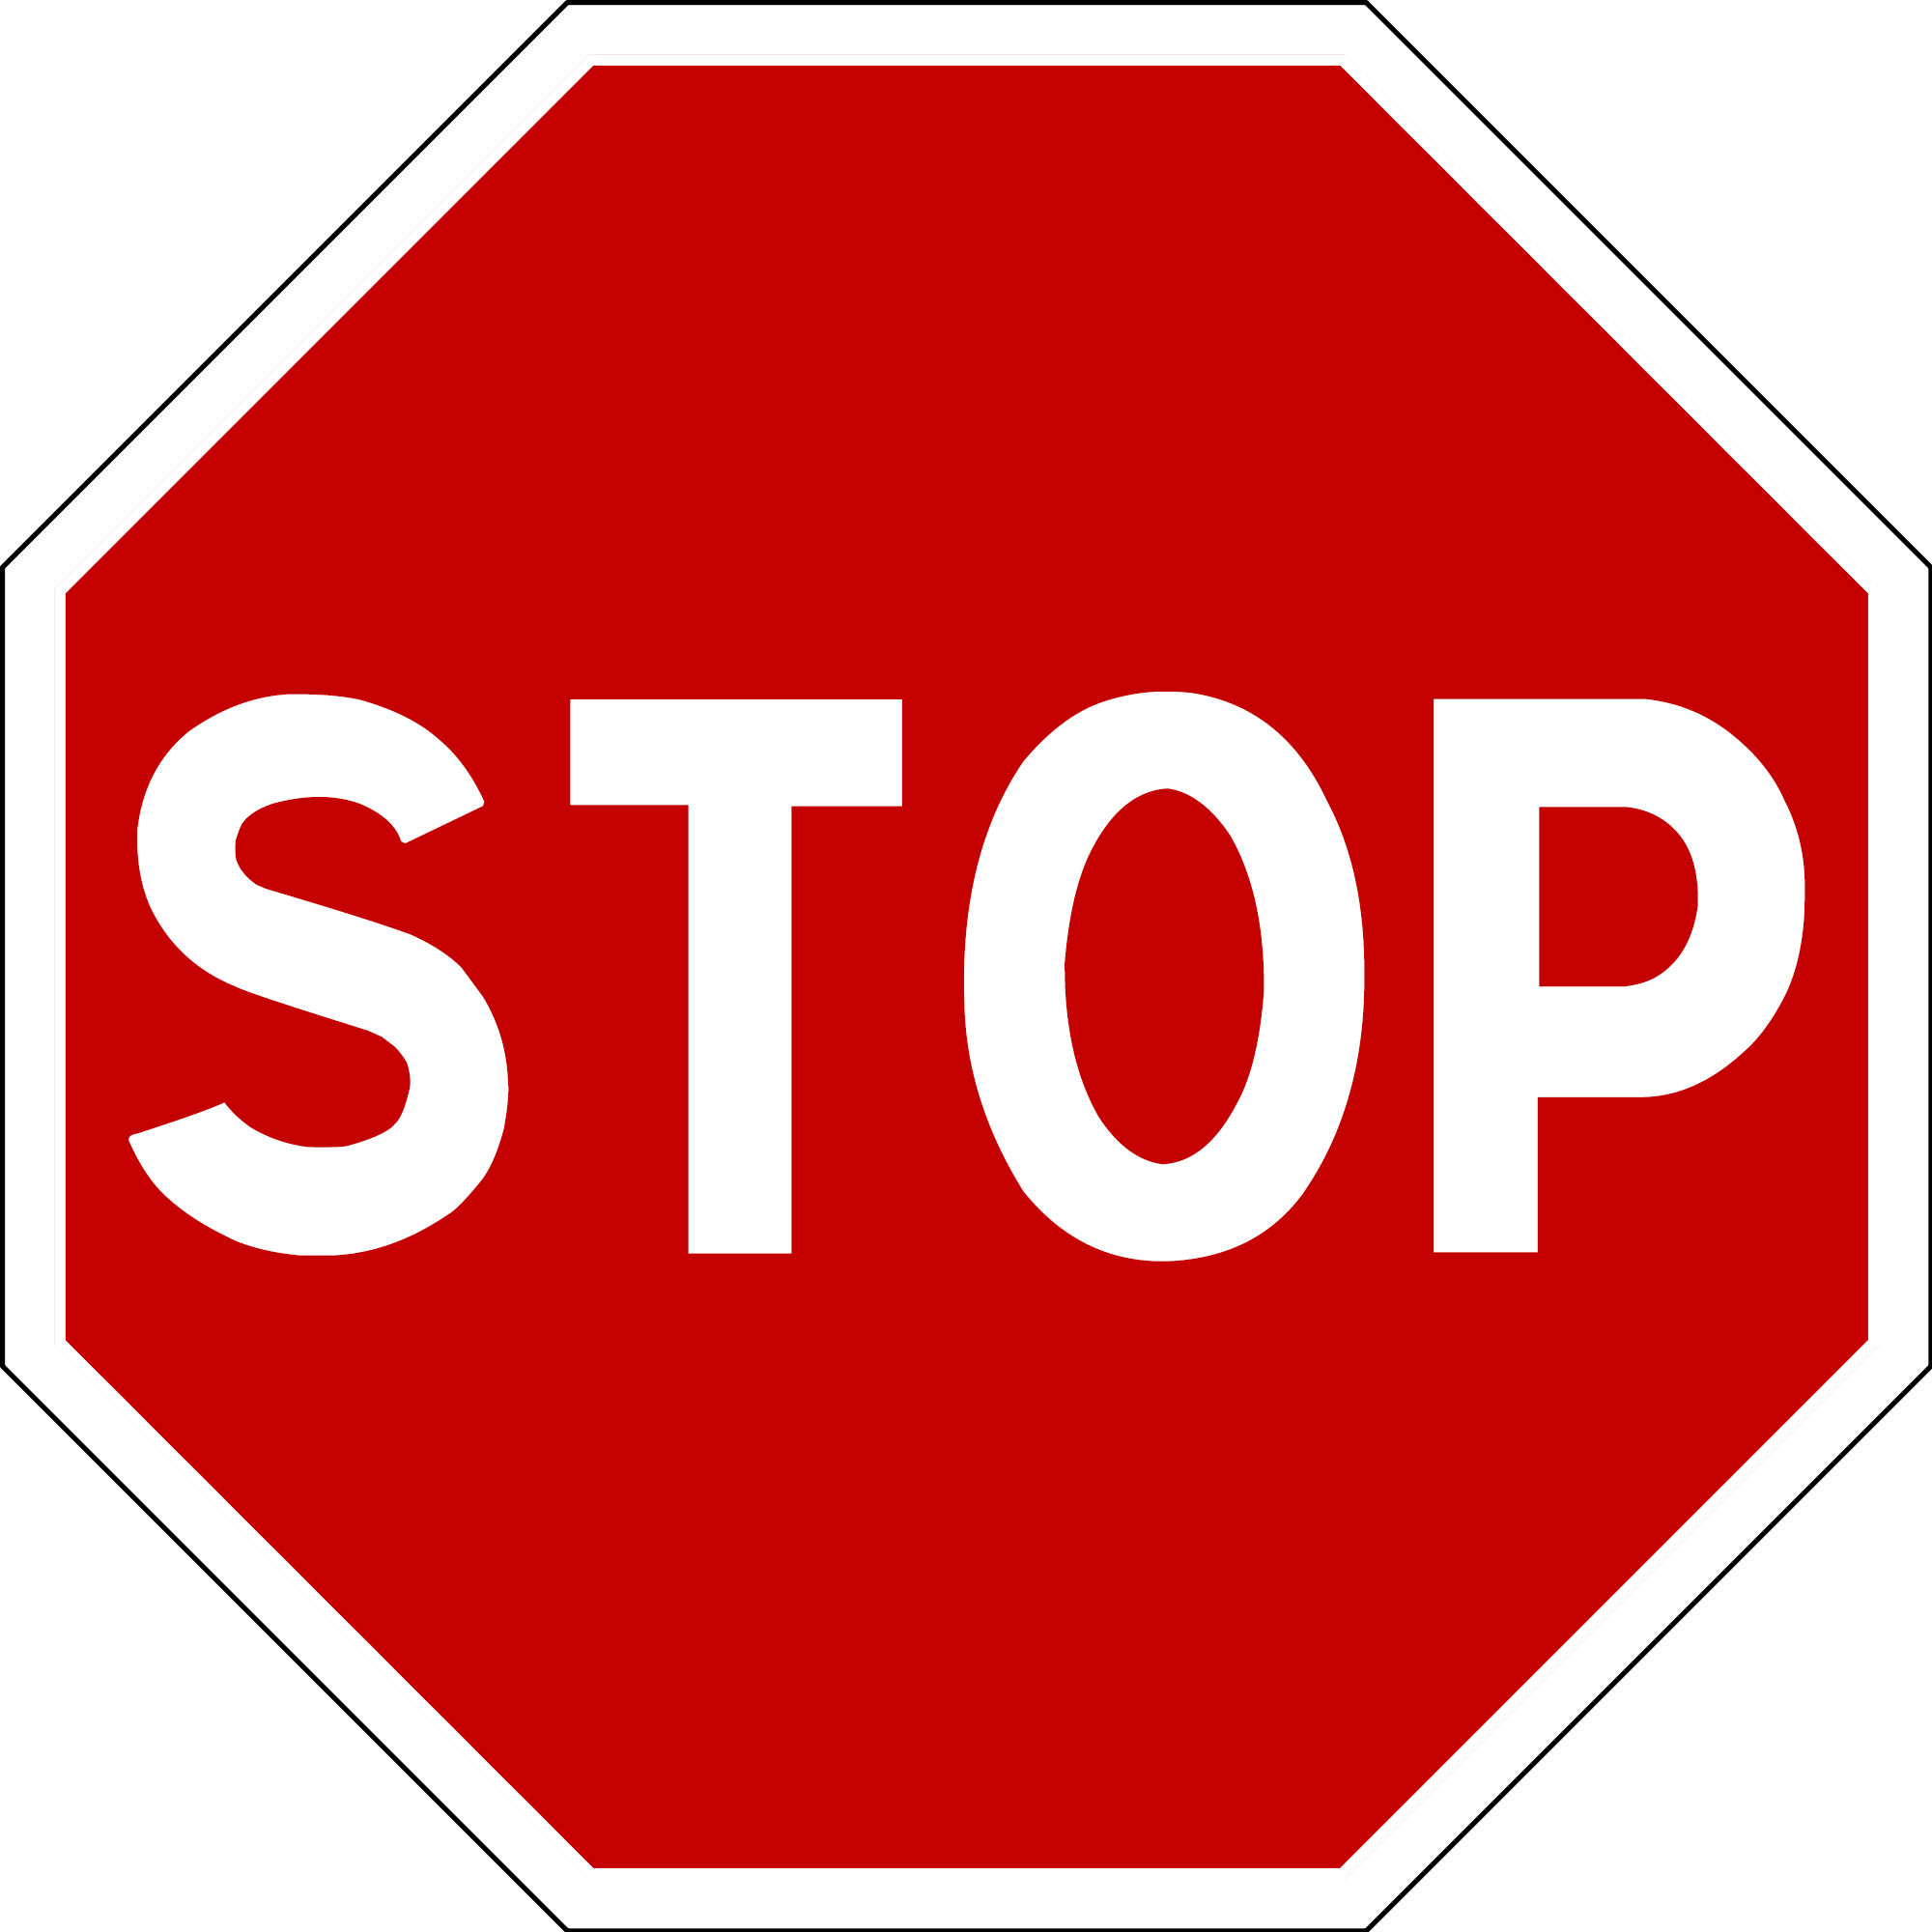 File:STOP F.png - Wikimedia Commons